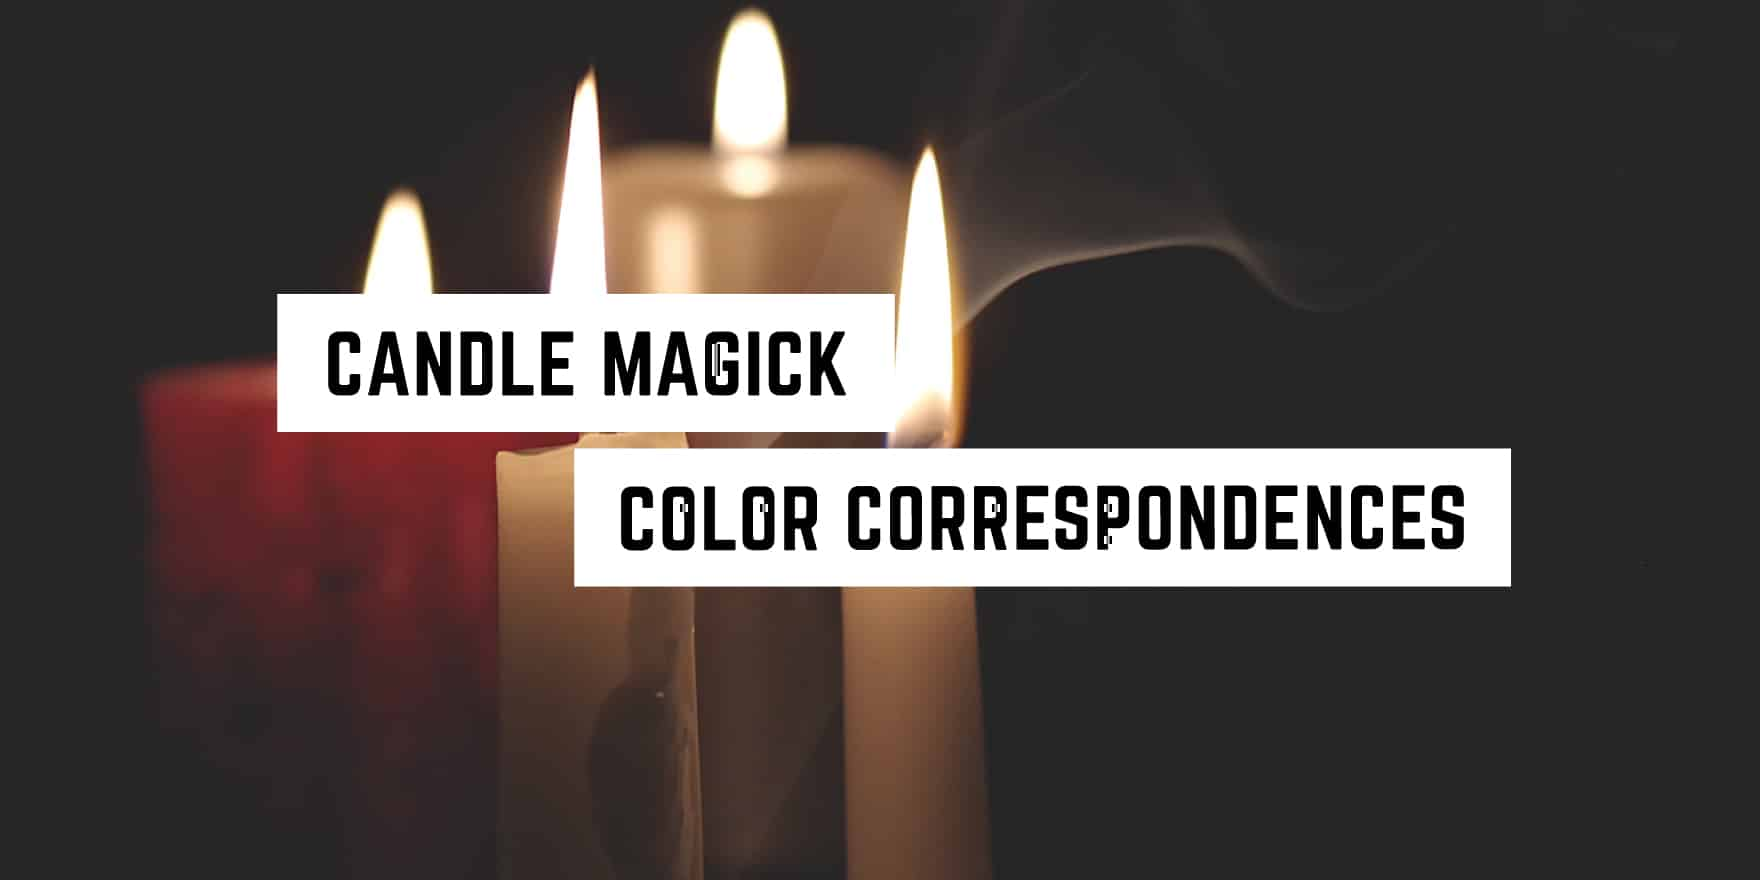 Candle Magick Candle Color Meanings Plentiful Earth